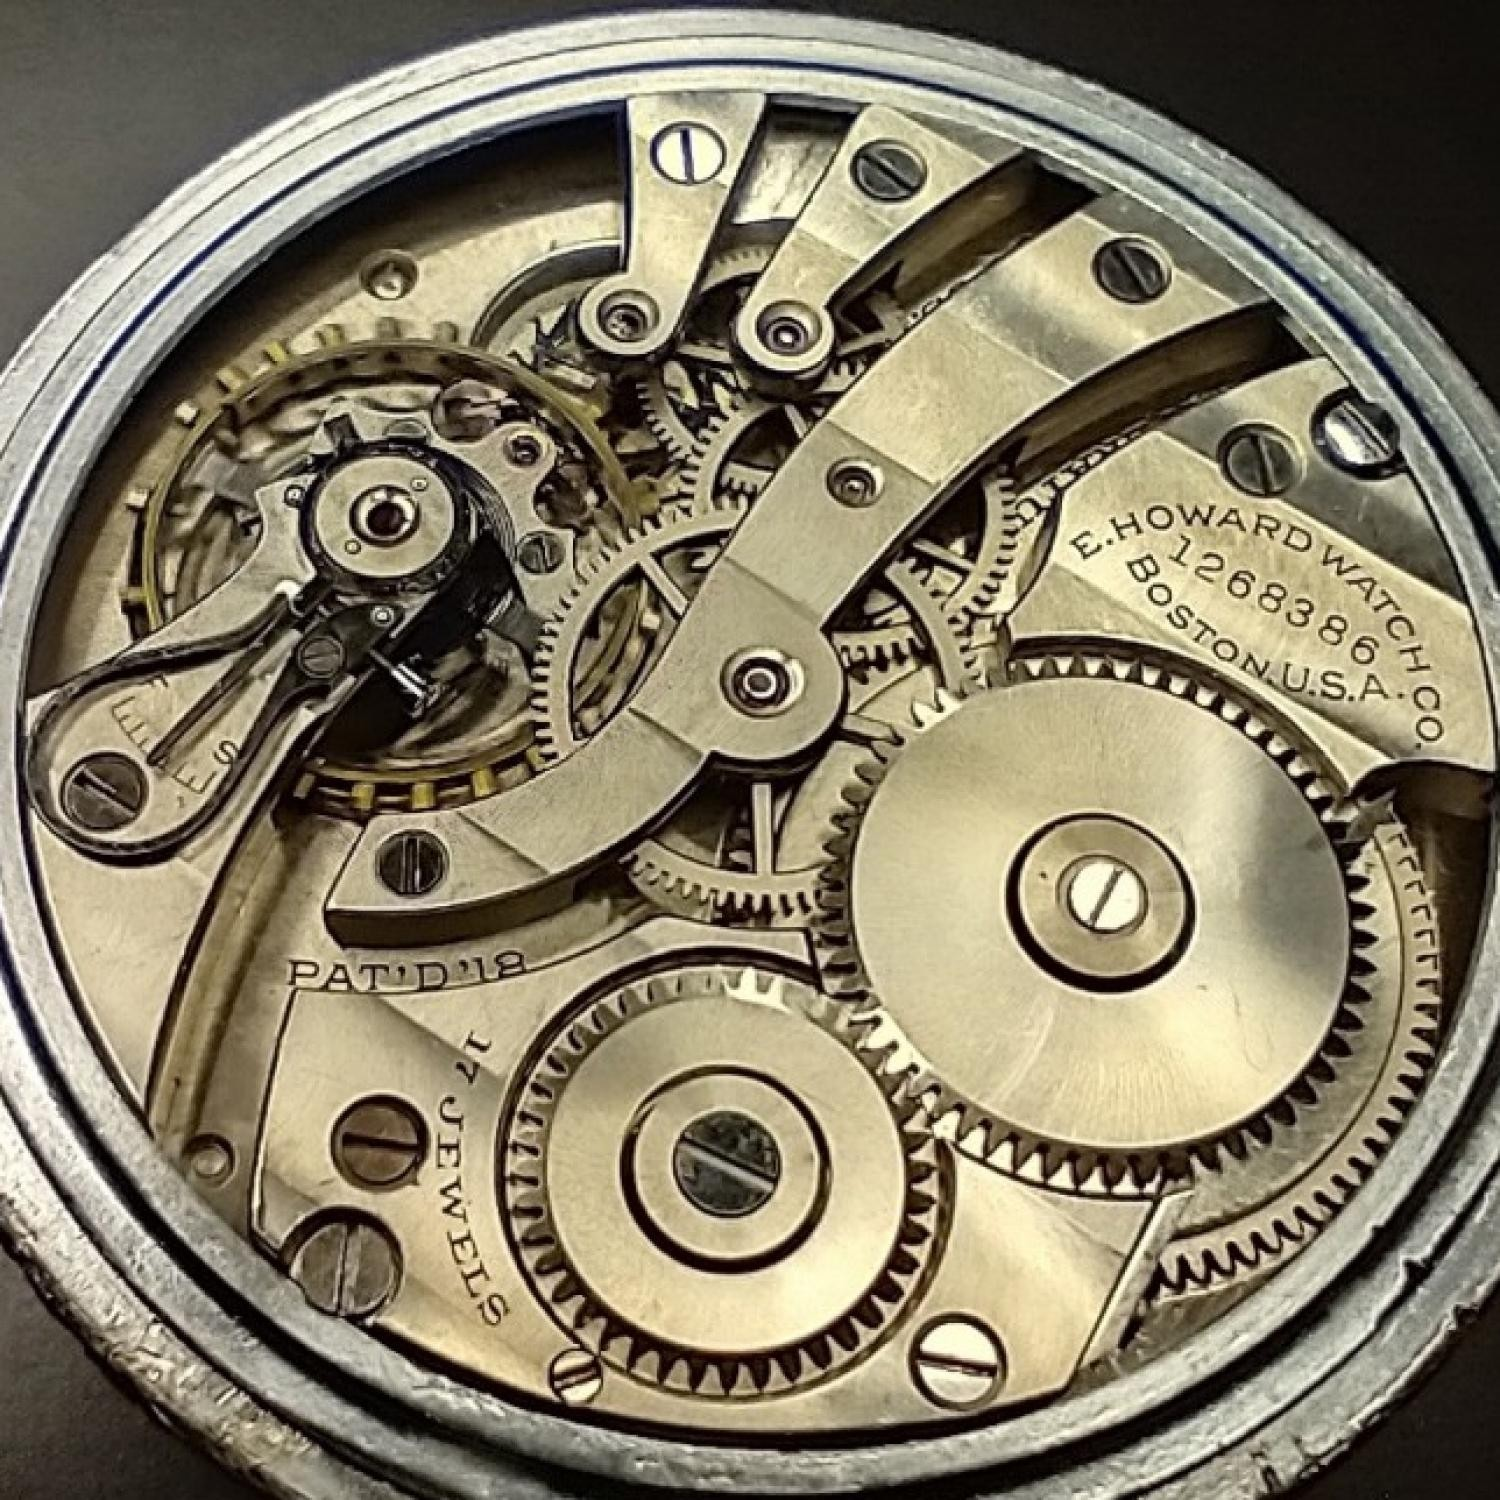 Image of E. Howard Watch Co. (Keystone) Series 7 #1268386 Movement